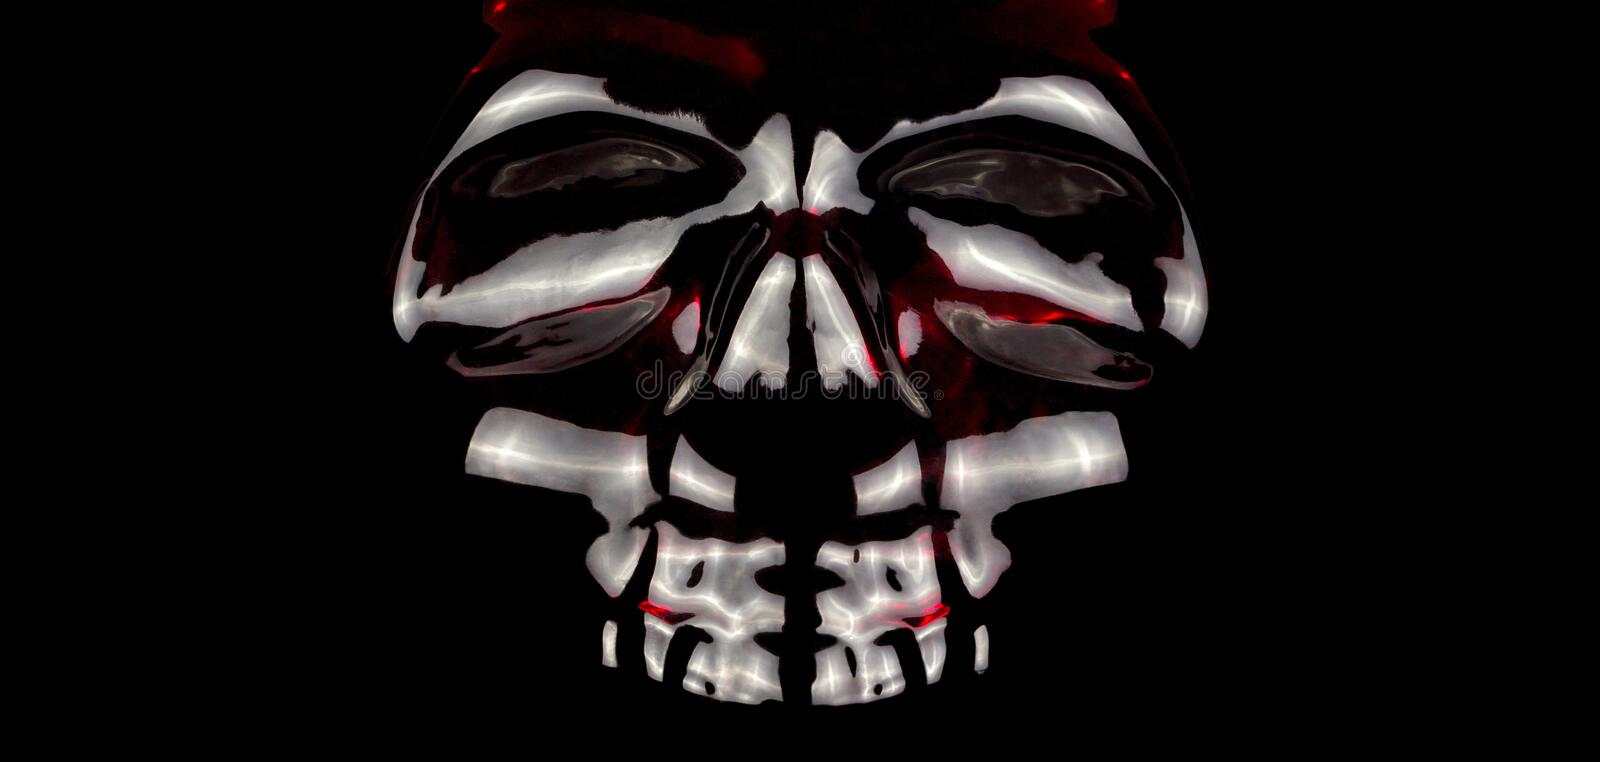 Light reflection from a glass skull with a red glow inside royalty free stock photography